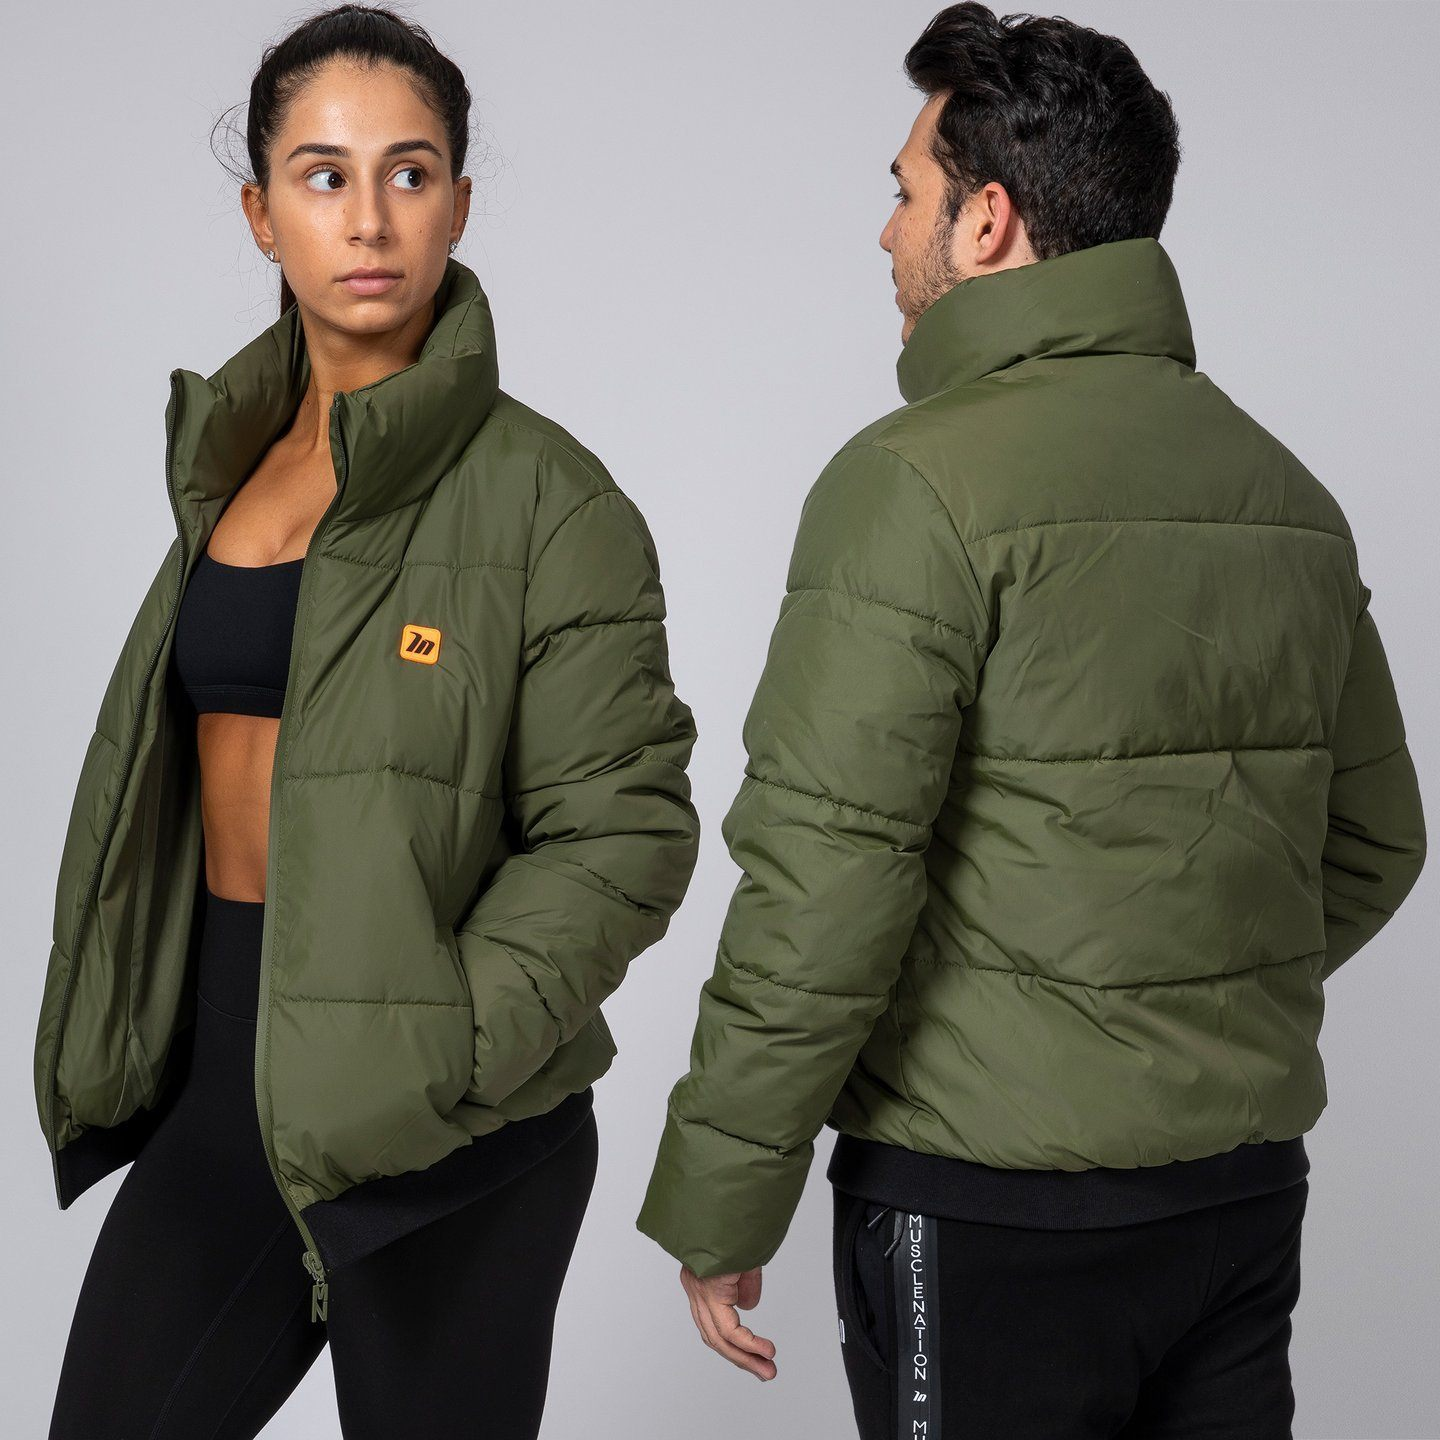 Muscle Nation Unisex Puffer Jacket - Khaki